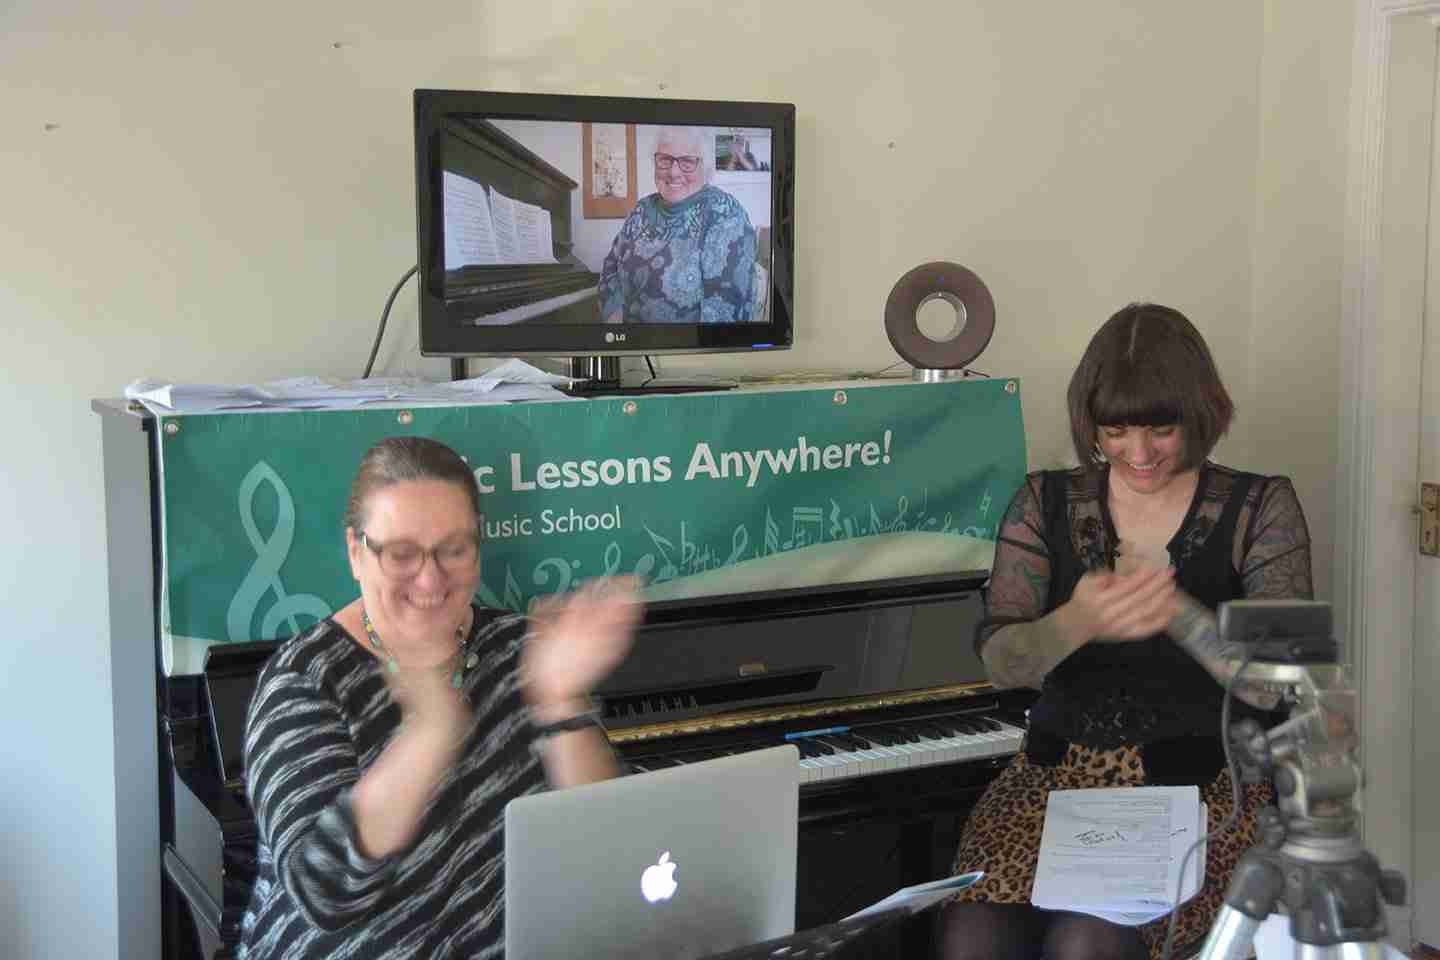 59-music-lessons-anywhere-online-music-lessons-concert-2018